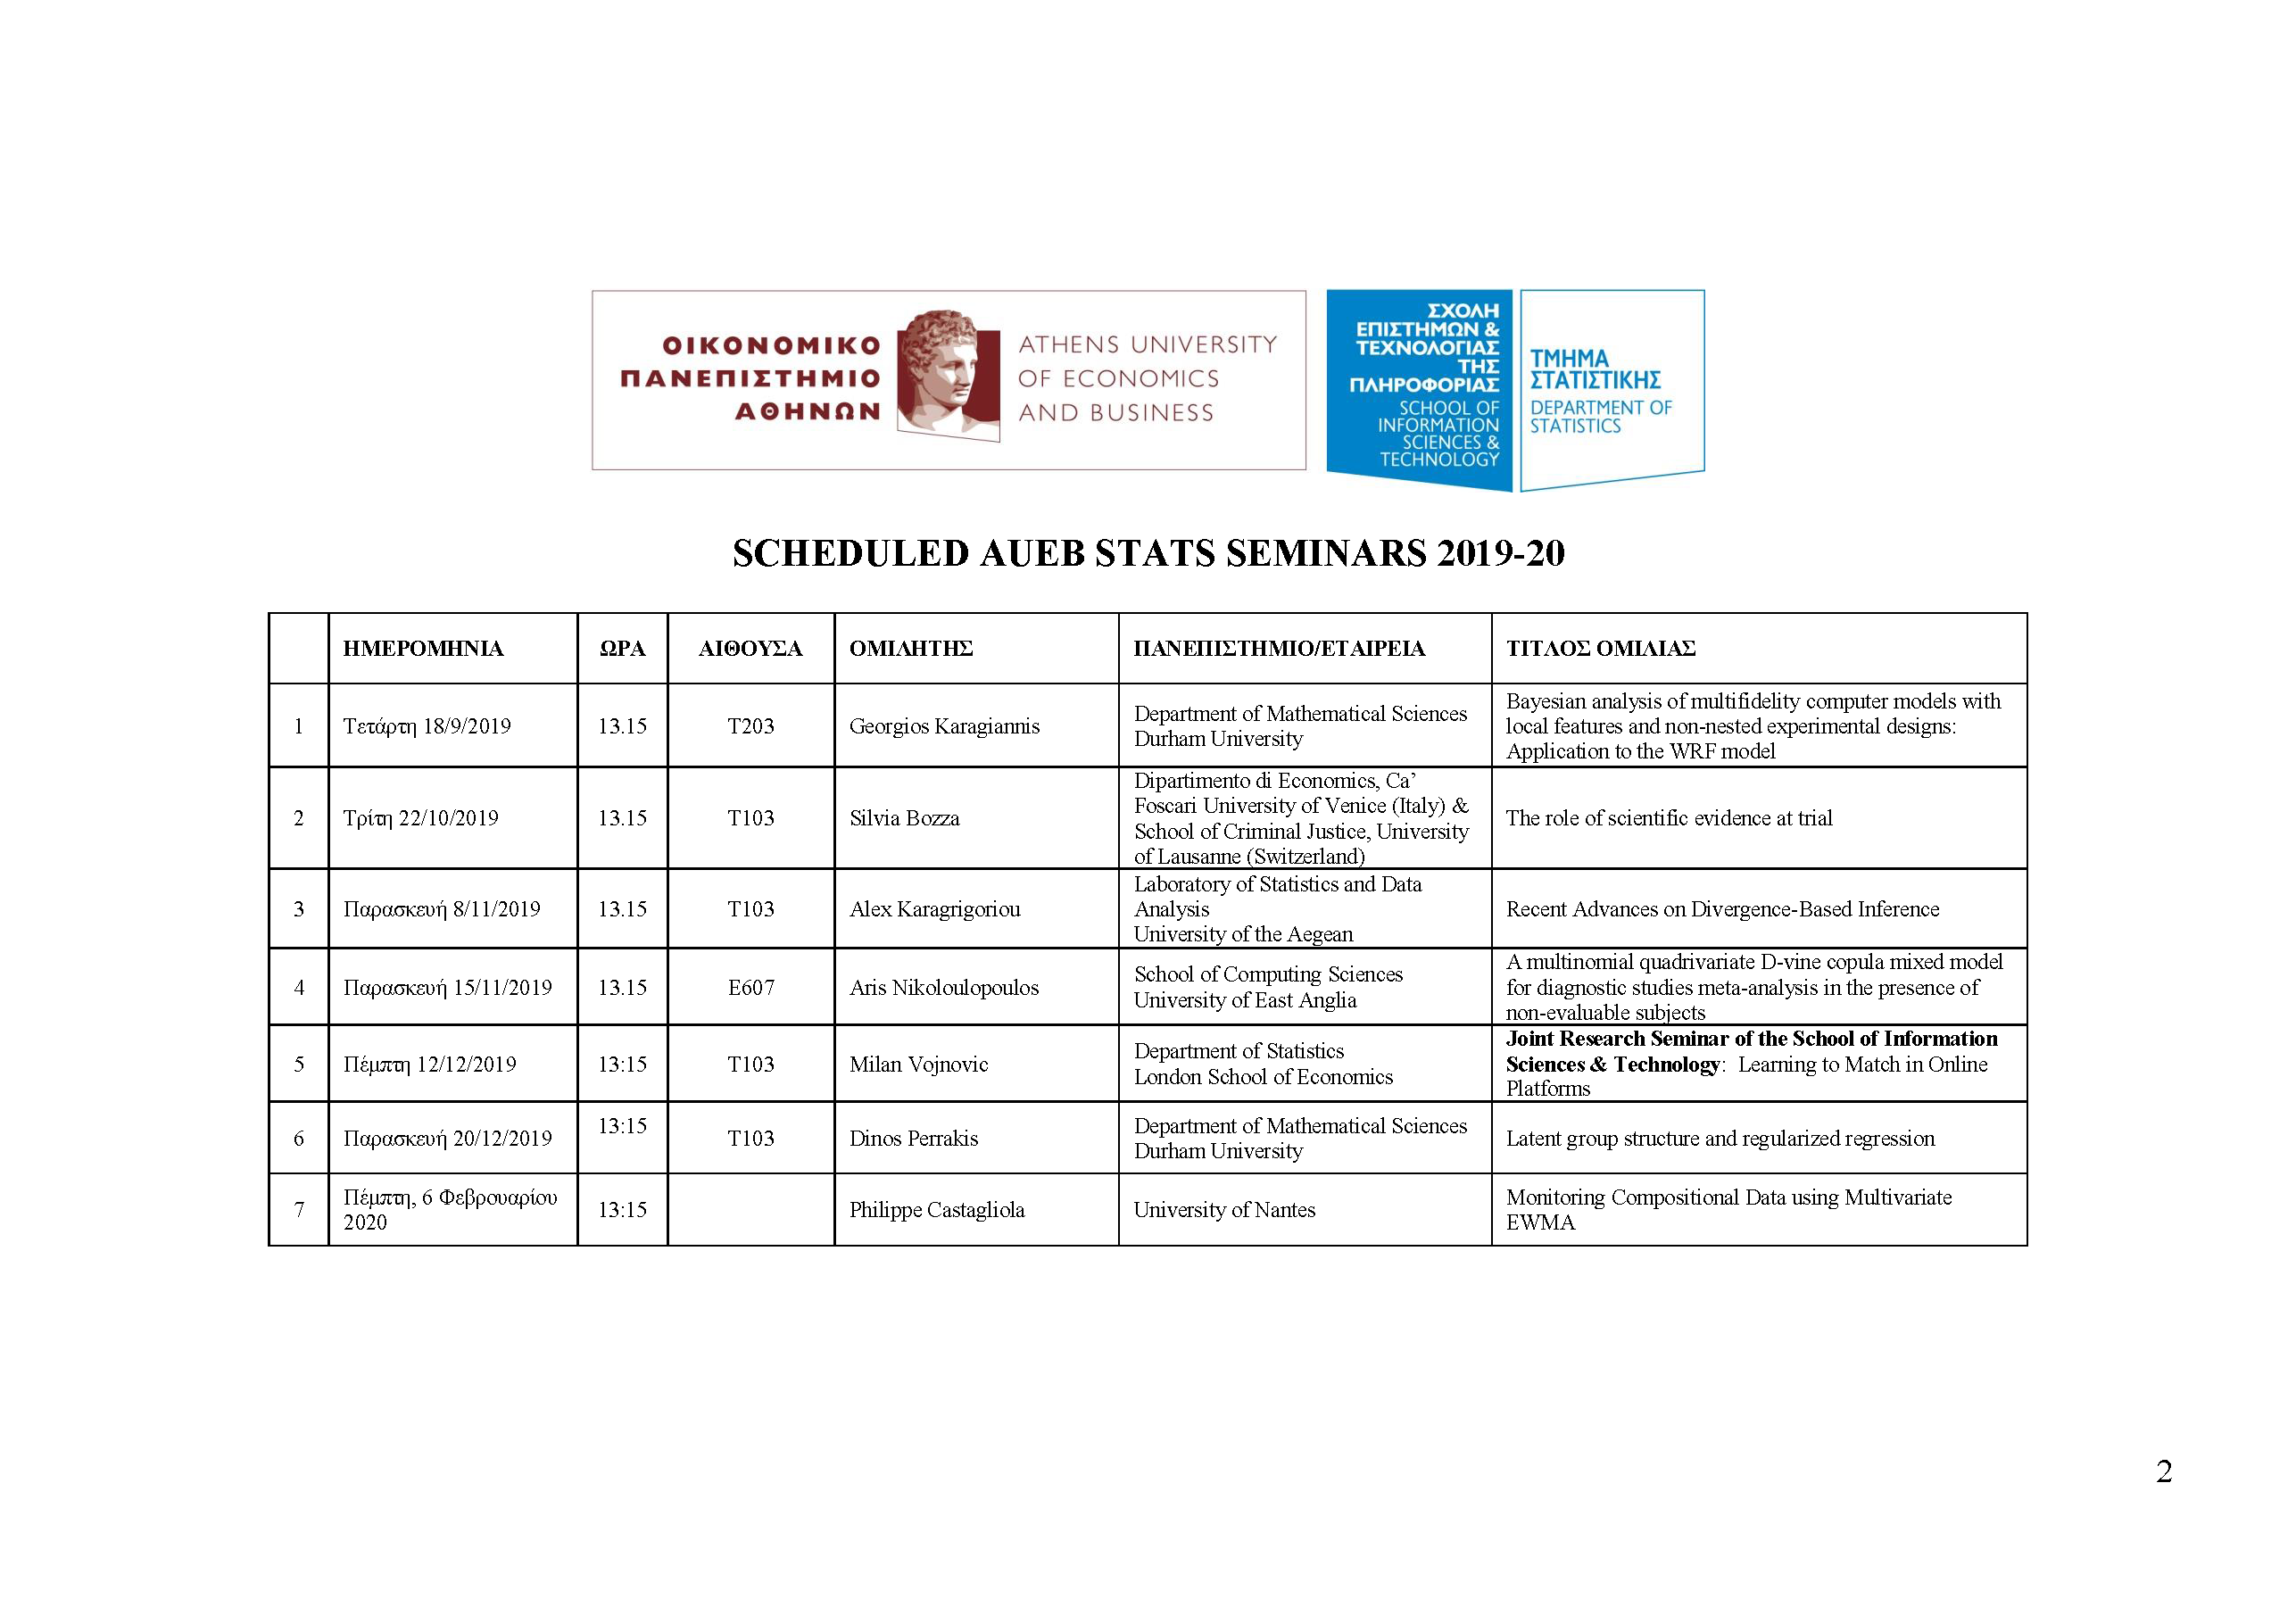 AUEB STATS SEMINARS OCT2019-FEB2020: Scheduled Seminars 2019-215